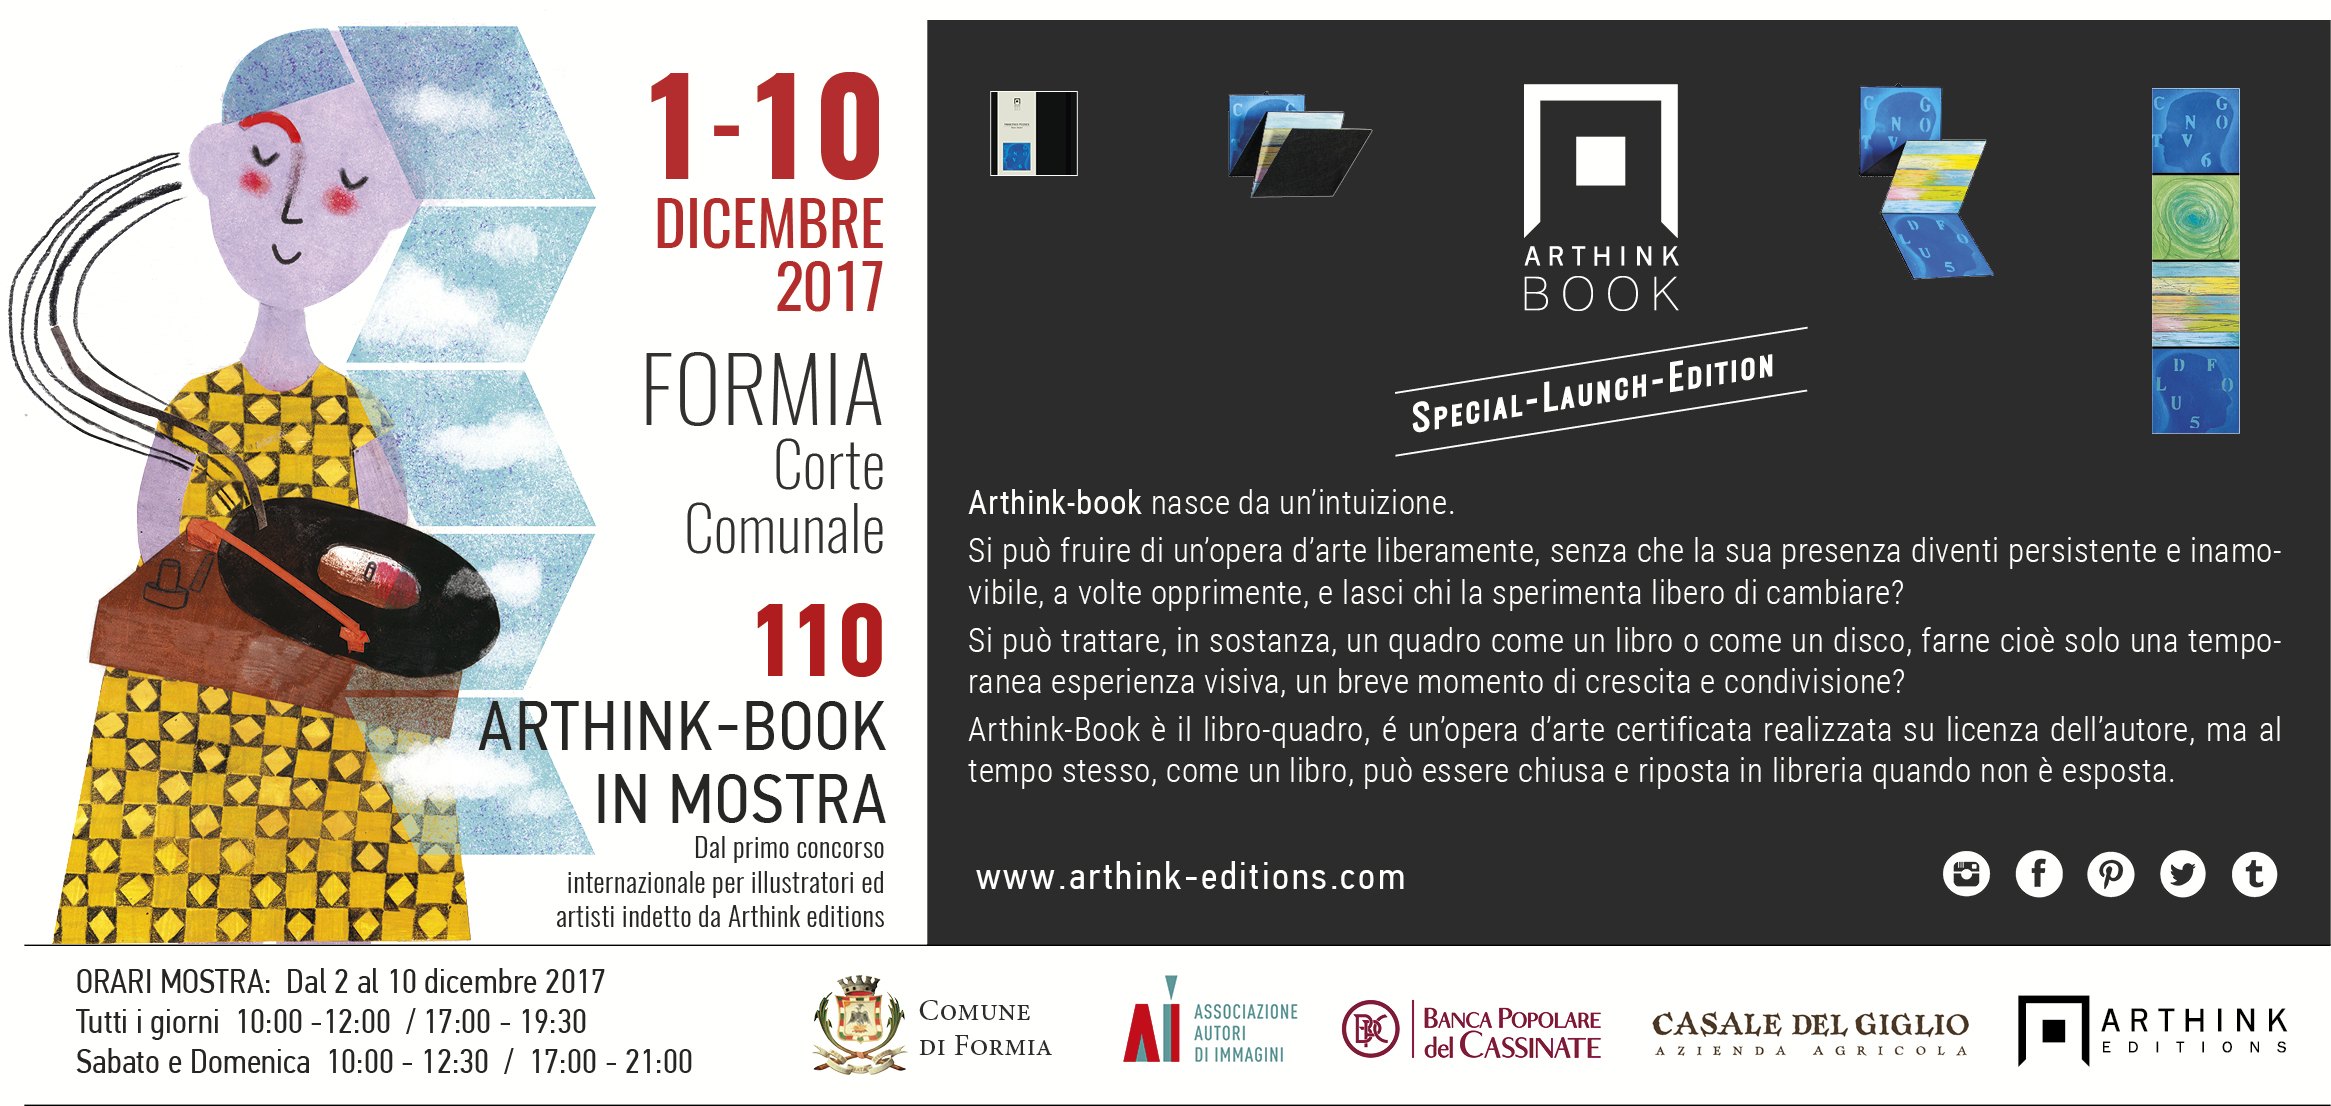 Invito Arthink Formia 1 dic 2017